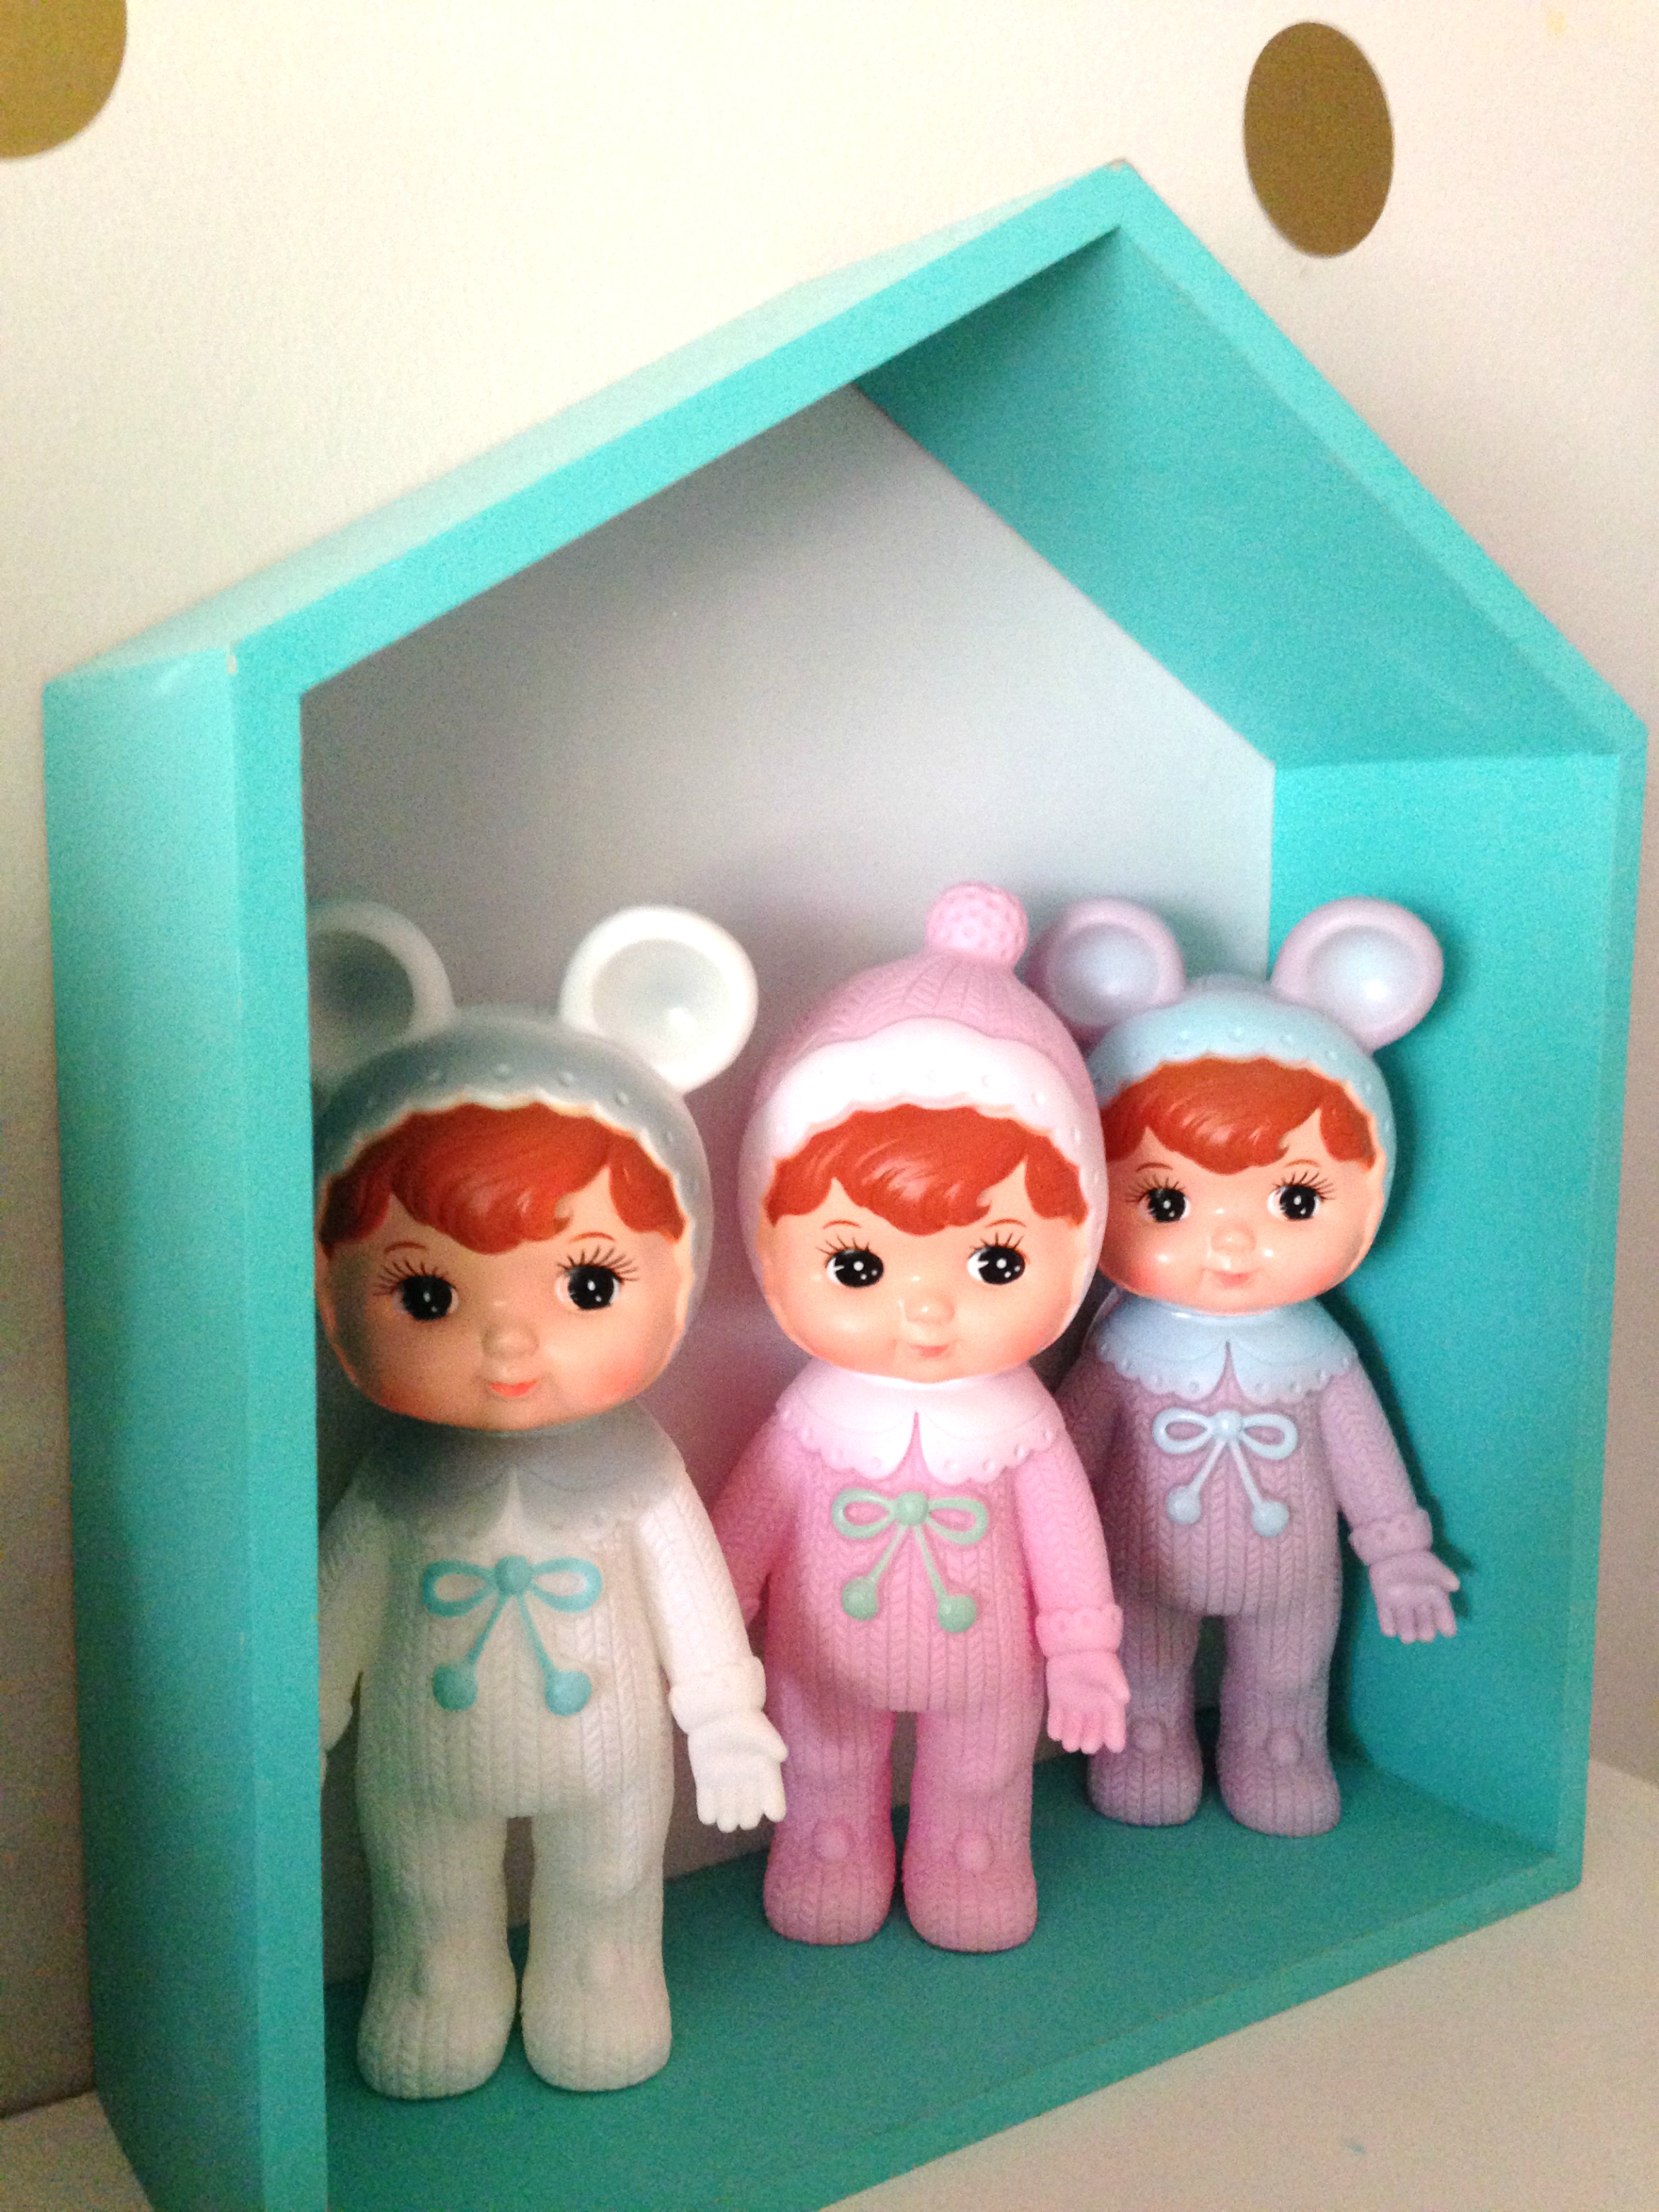 Lapin and me dolls